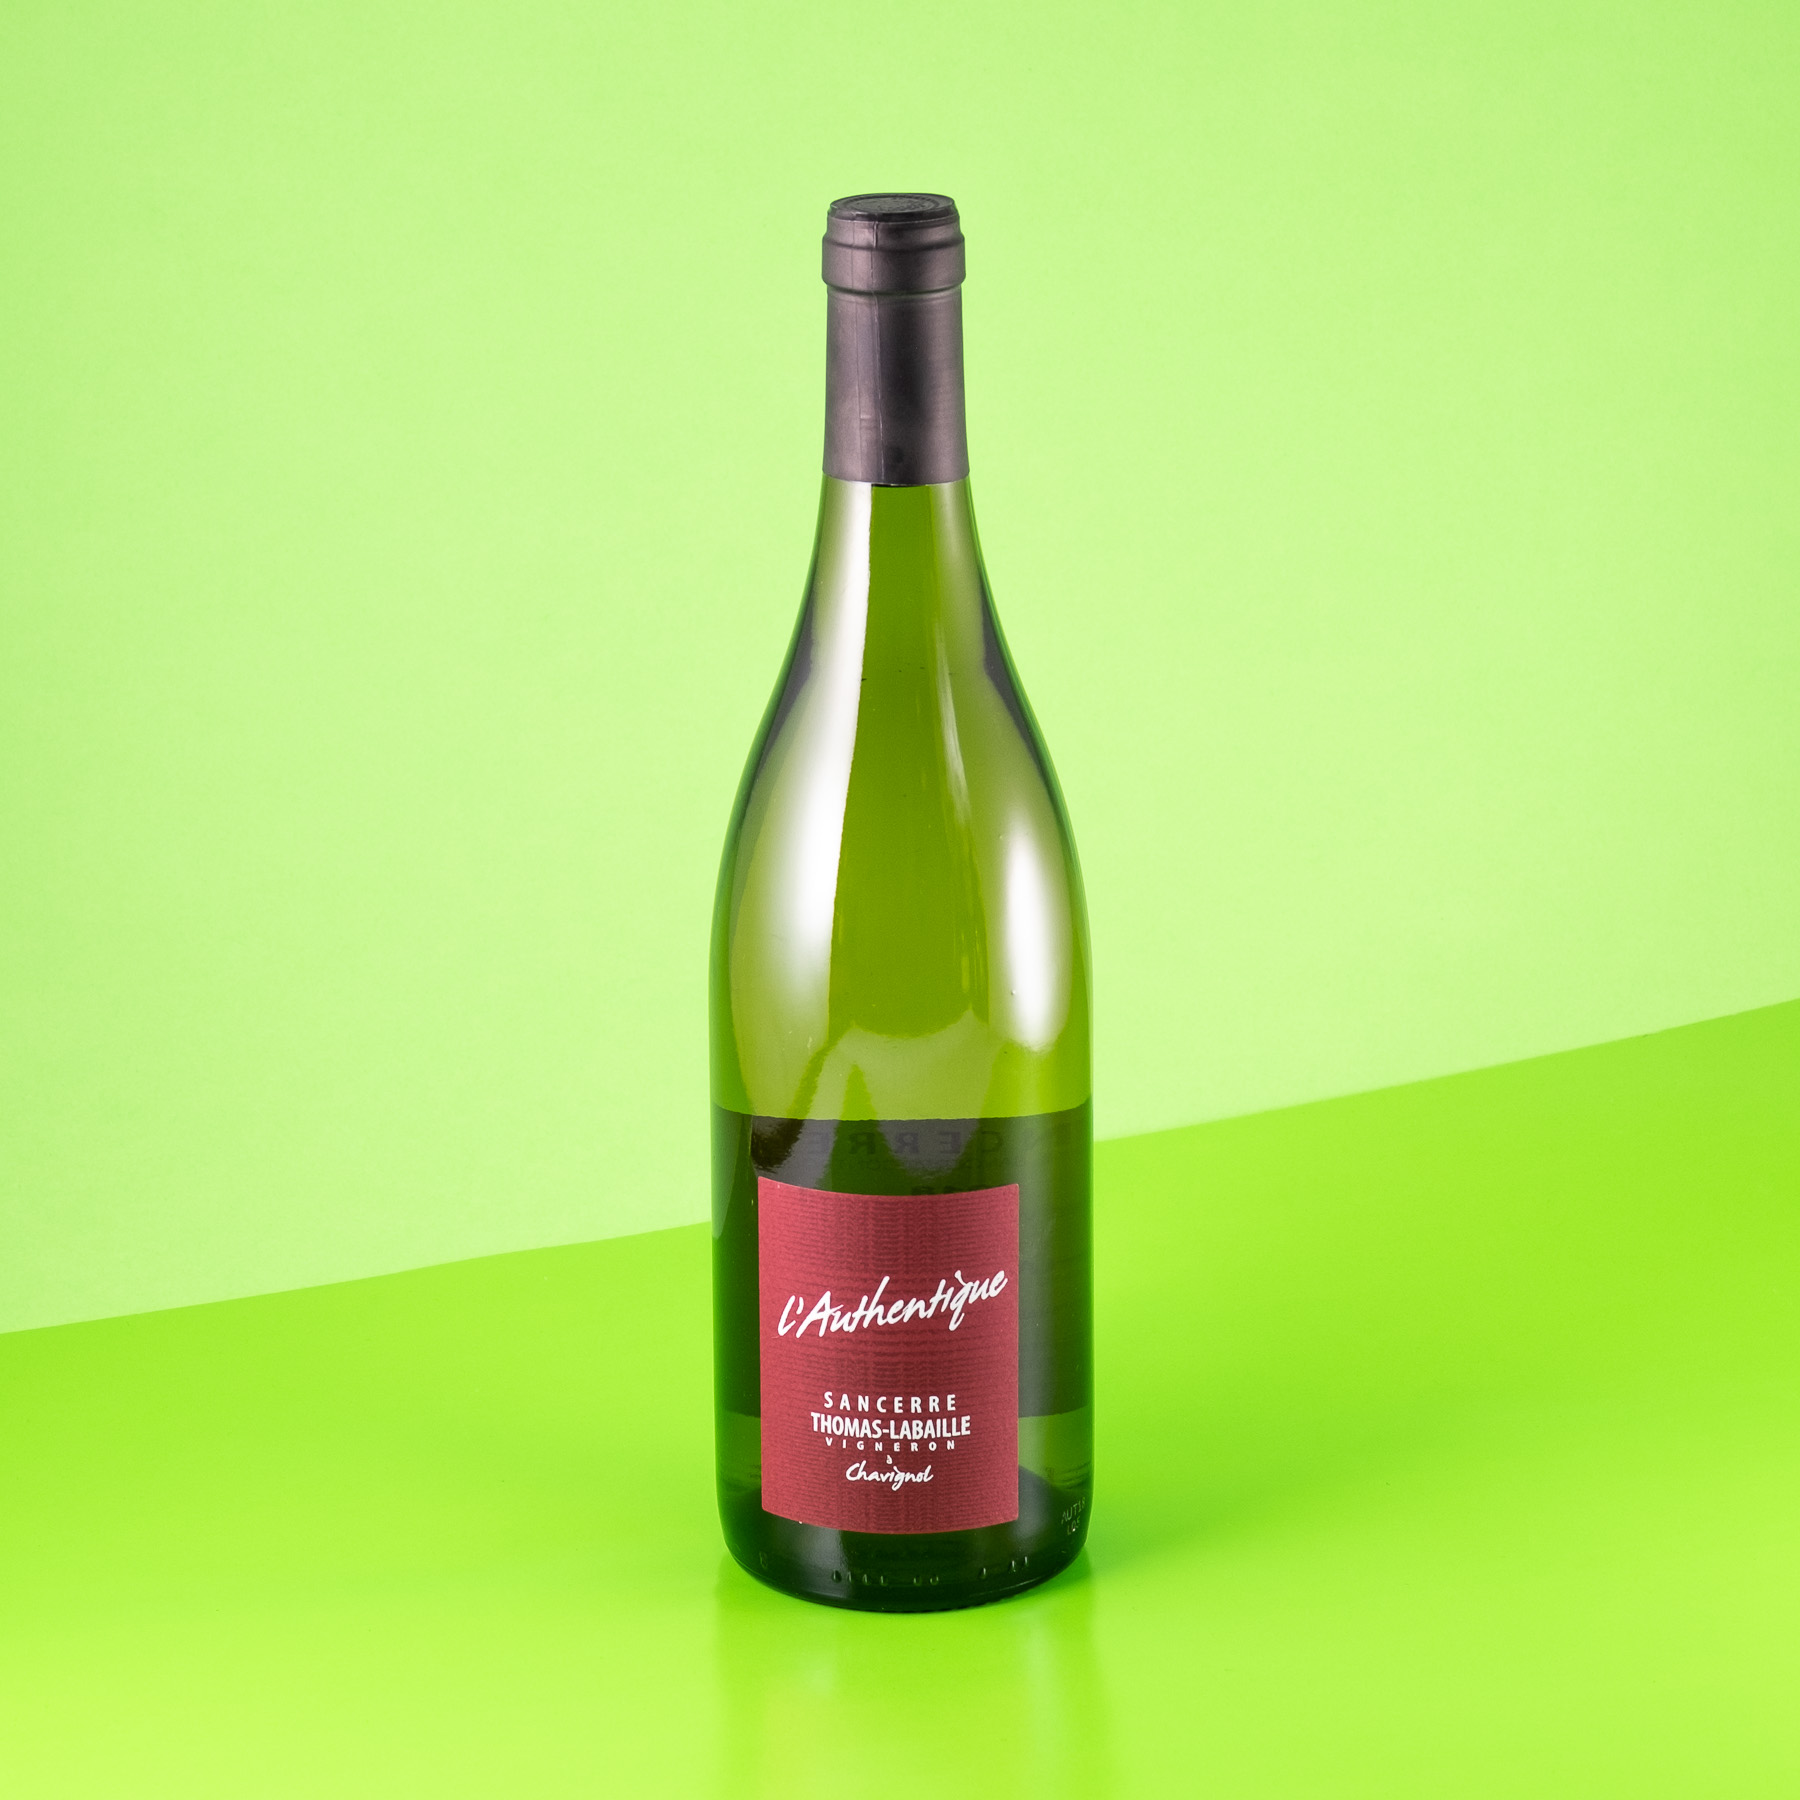 Sancerre Chavignol Authentique